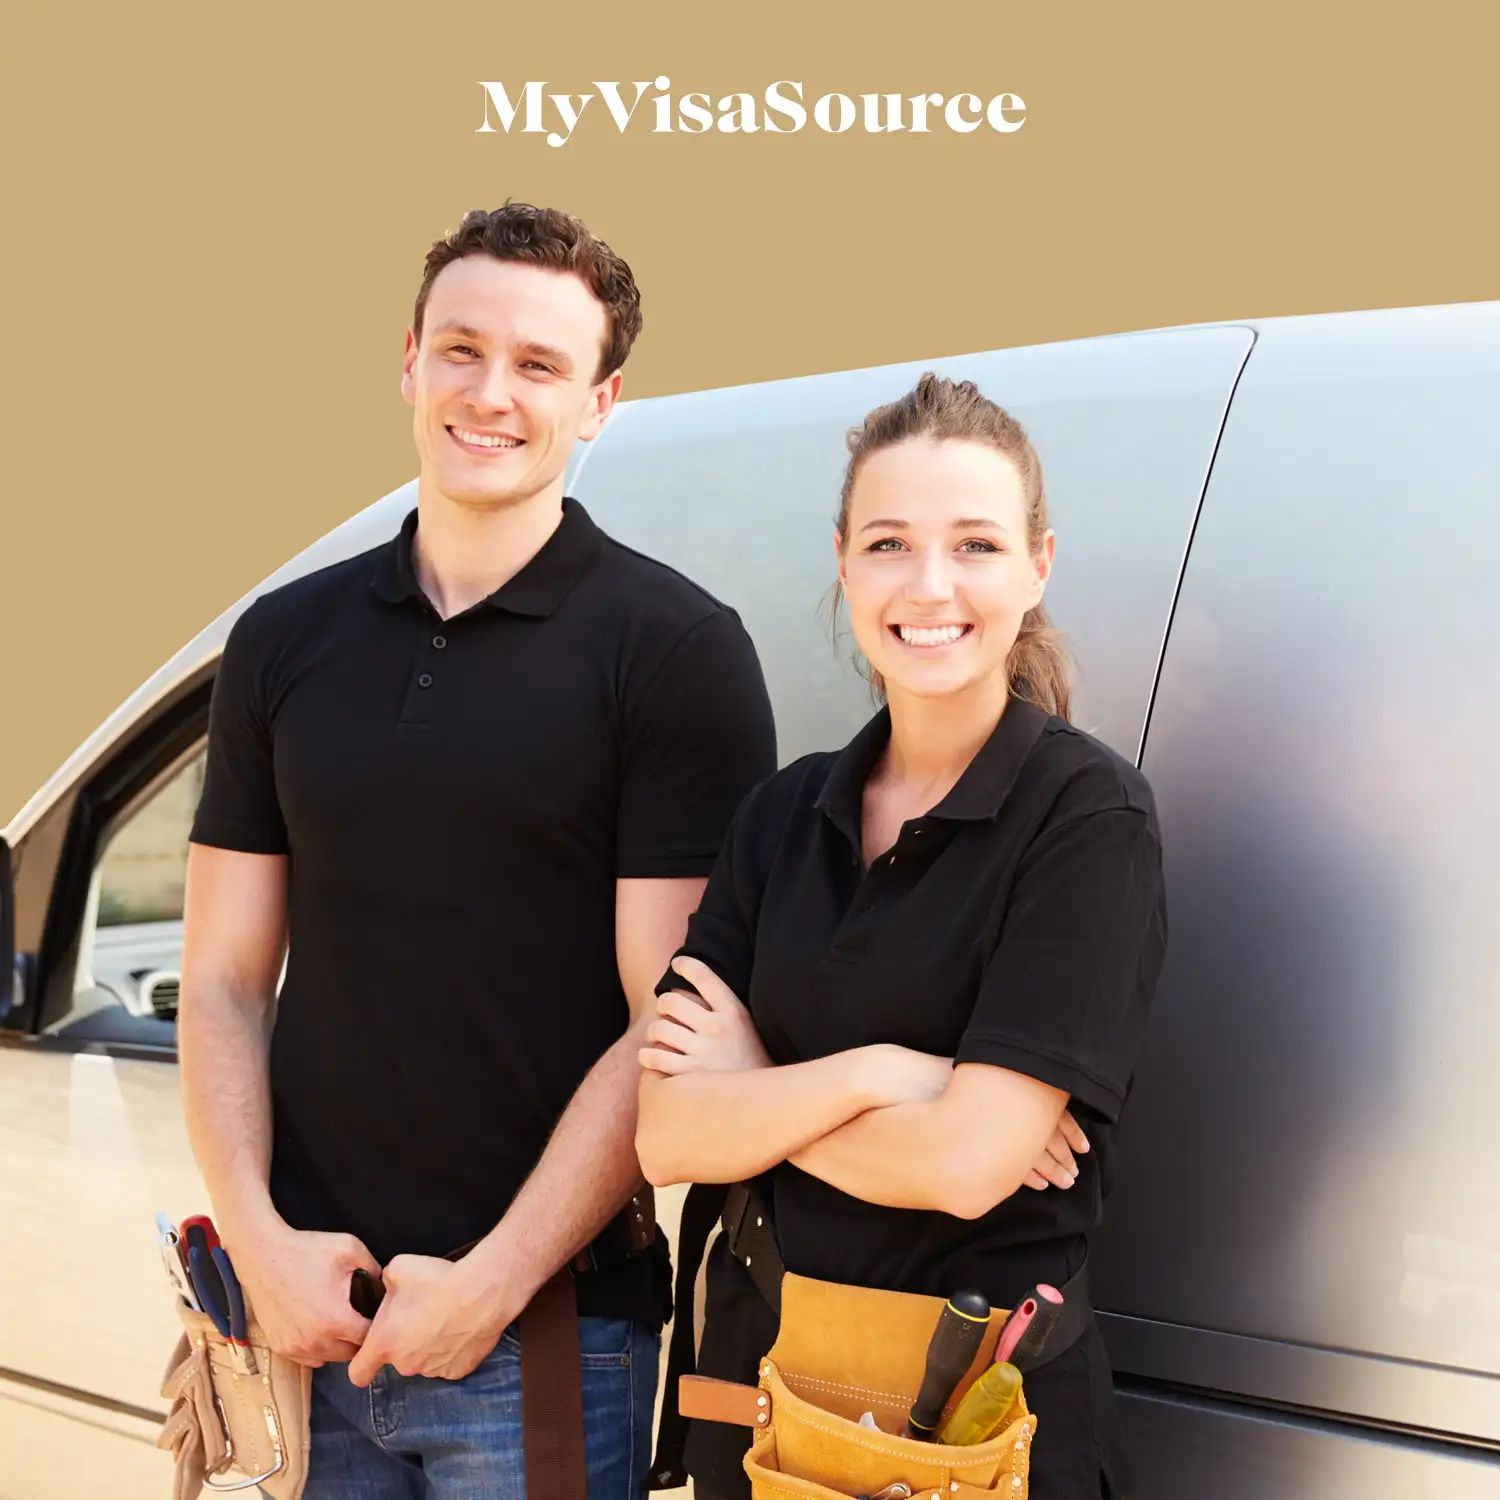 cheerful young couple tradespeople posing infront of their work van on brown background by my visa source